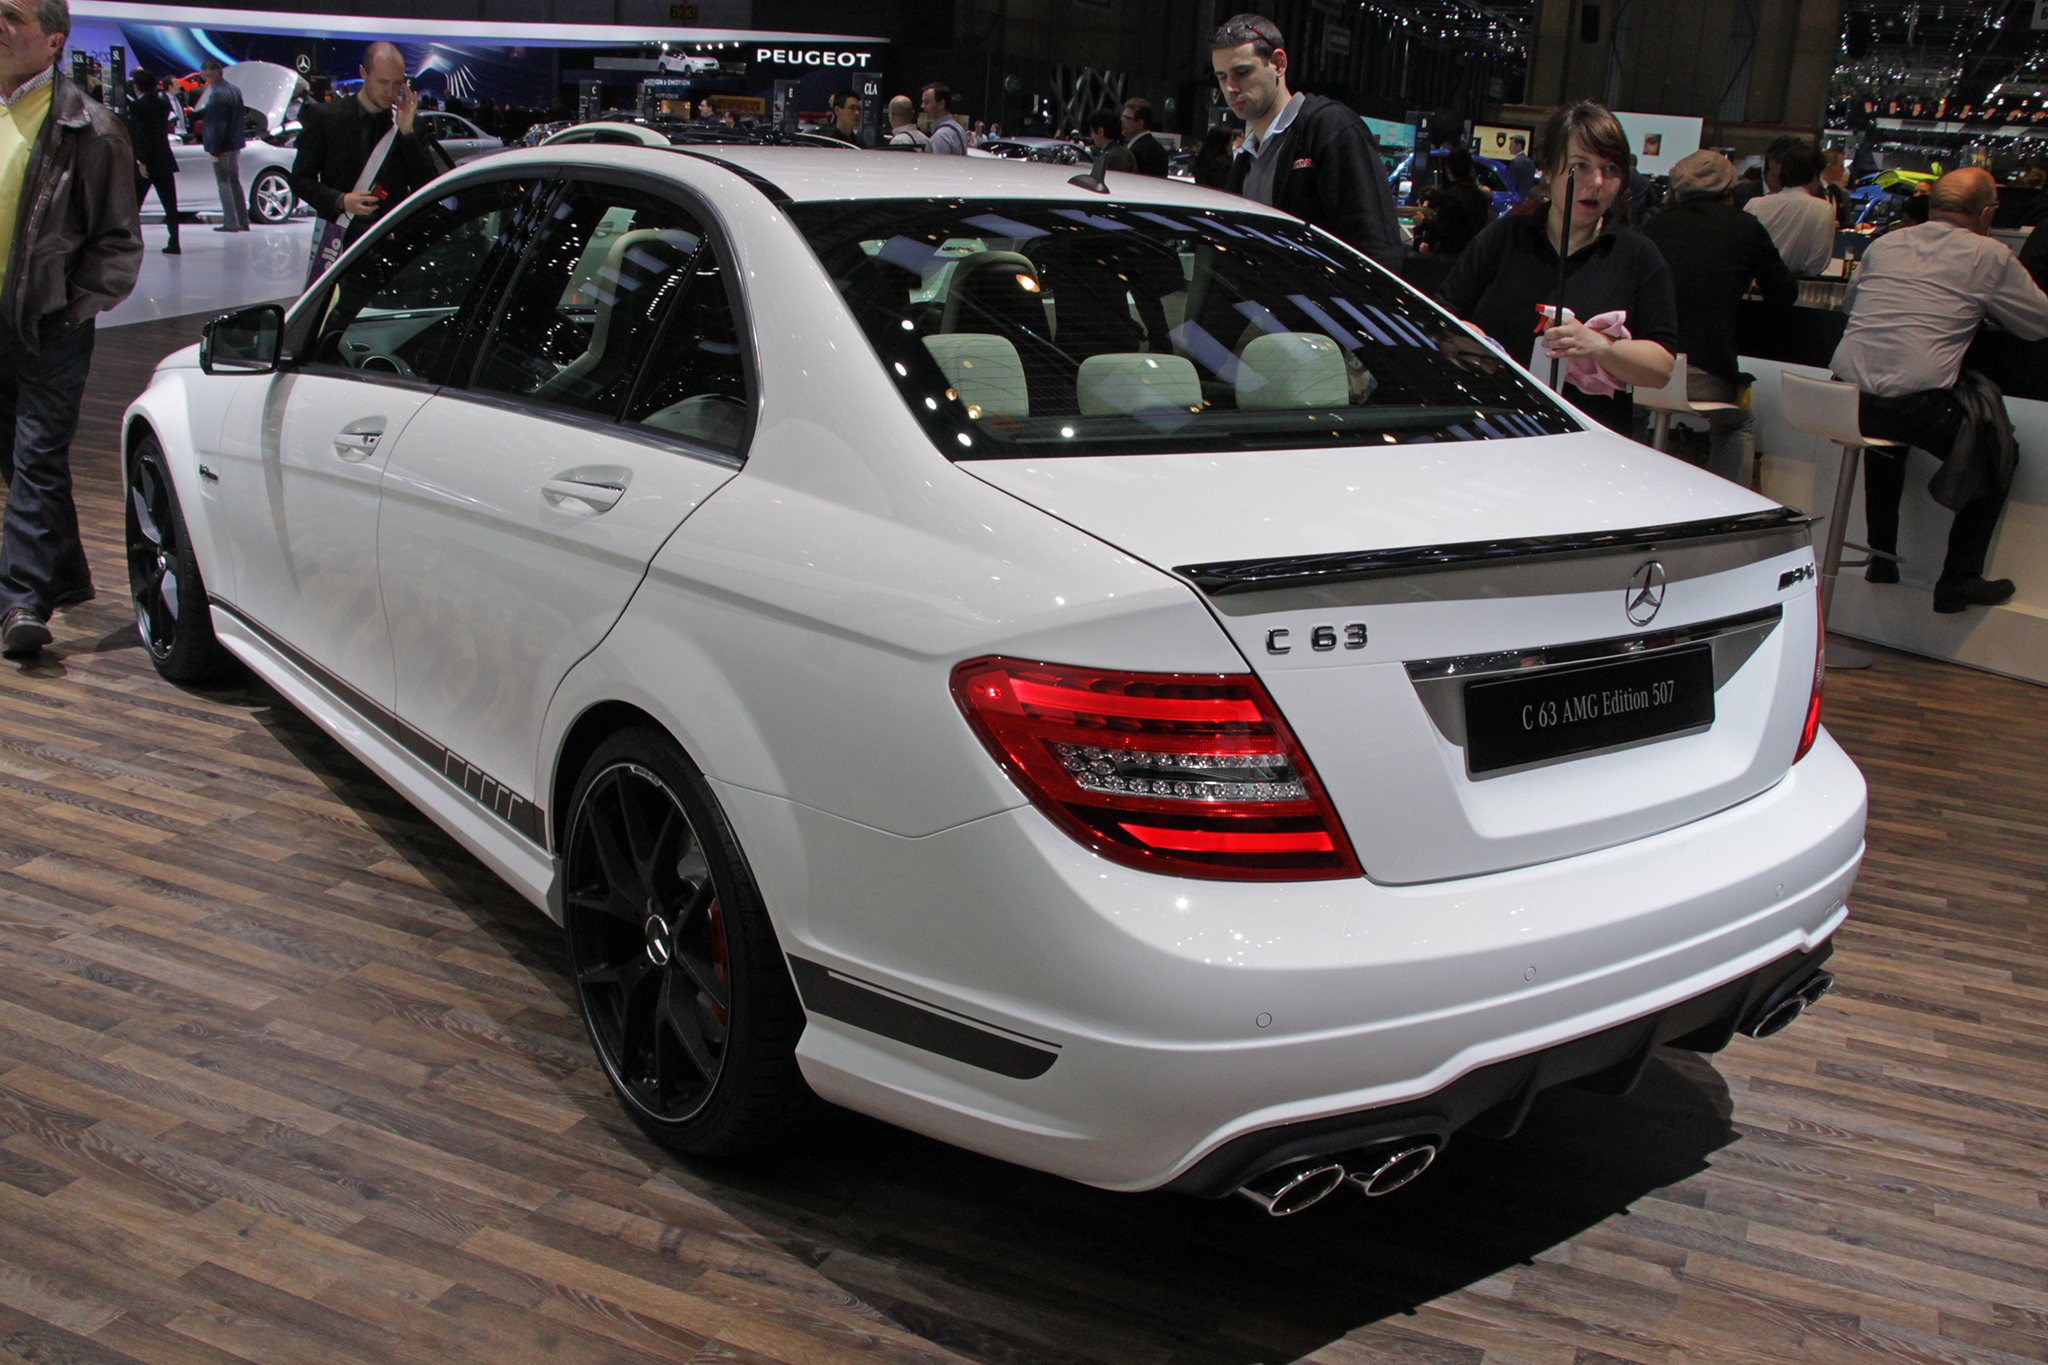 2015 mercedes benz c63 amg 507 edition autos post. Black Bedroom Furniture Sets. Home Design Ideas